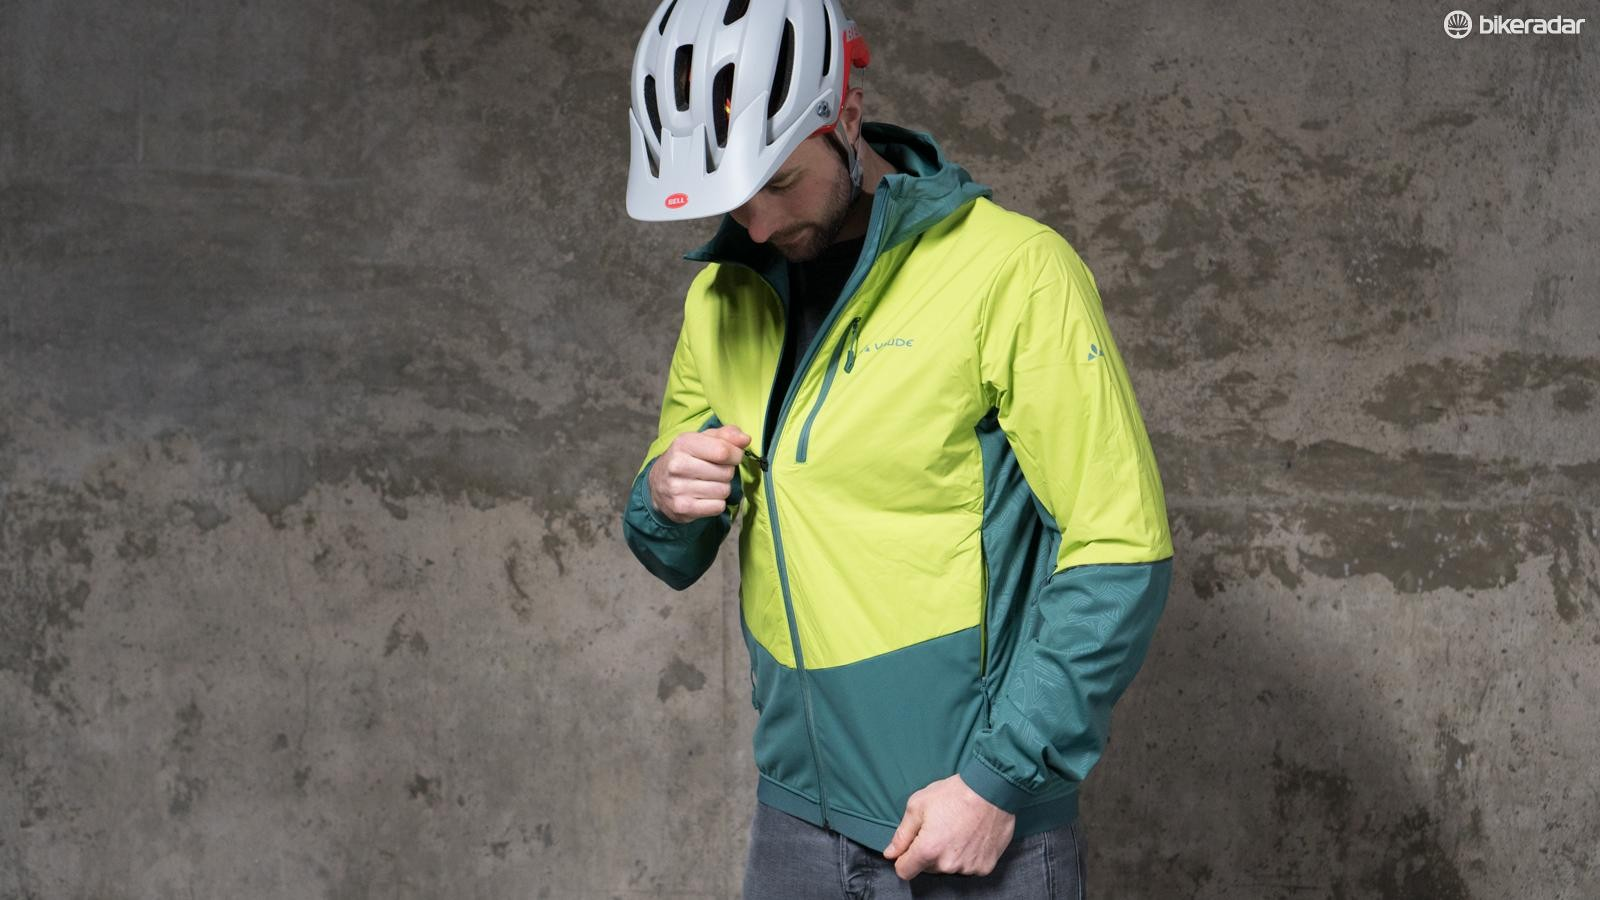 Vaude's Moab jacket has fantastic green credentials